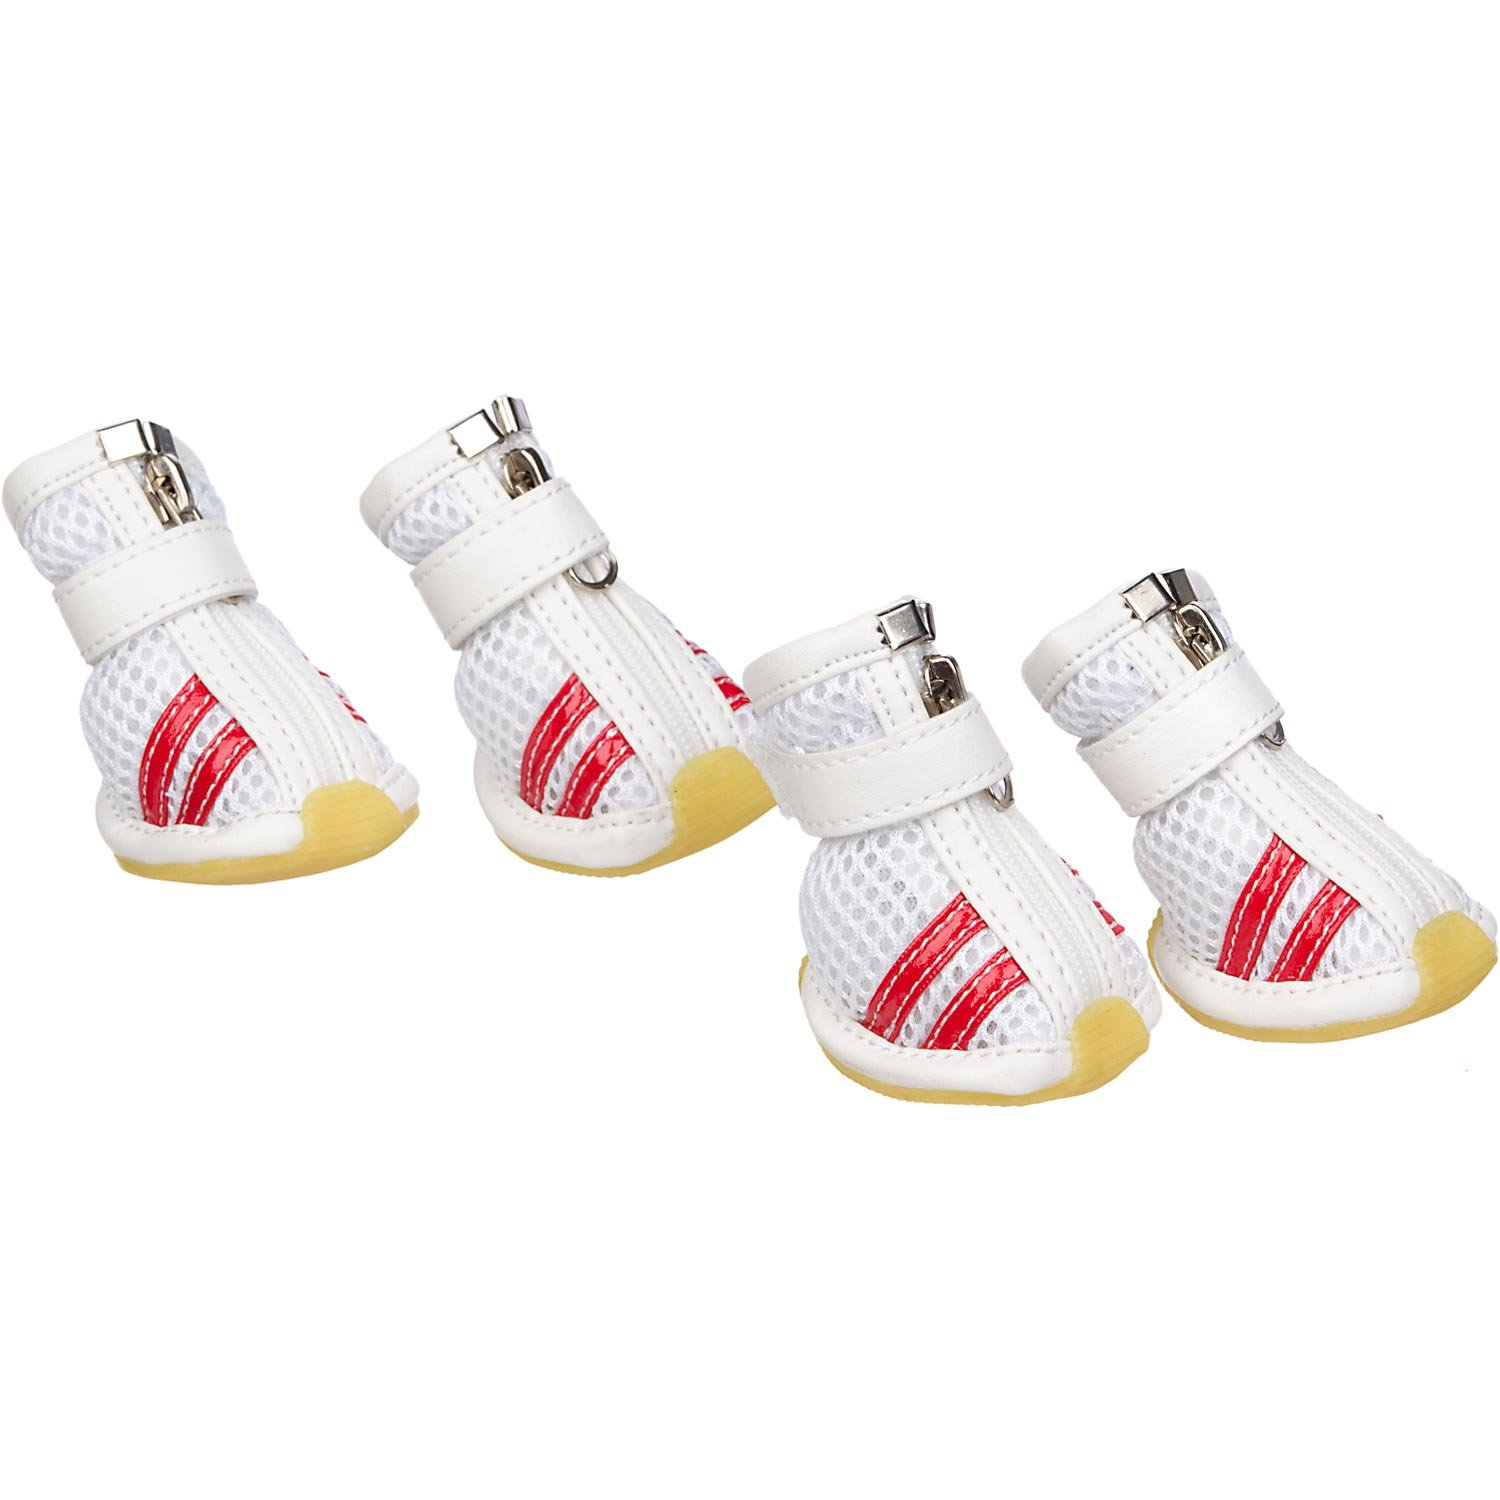 PET LIFE 'Air-Mesh' Flexible Lightweight Sporty Fashion Breathable Pet Dog Shoes Sneakers Booties Boots w/ Rubberized Grips, Large, White & Red by Pet Life